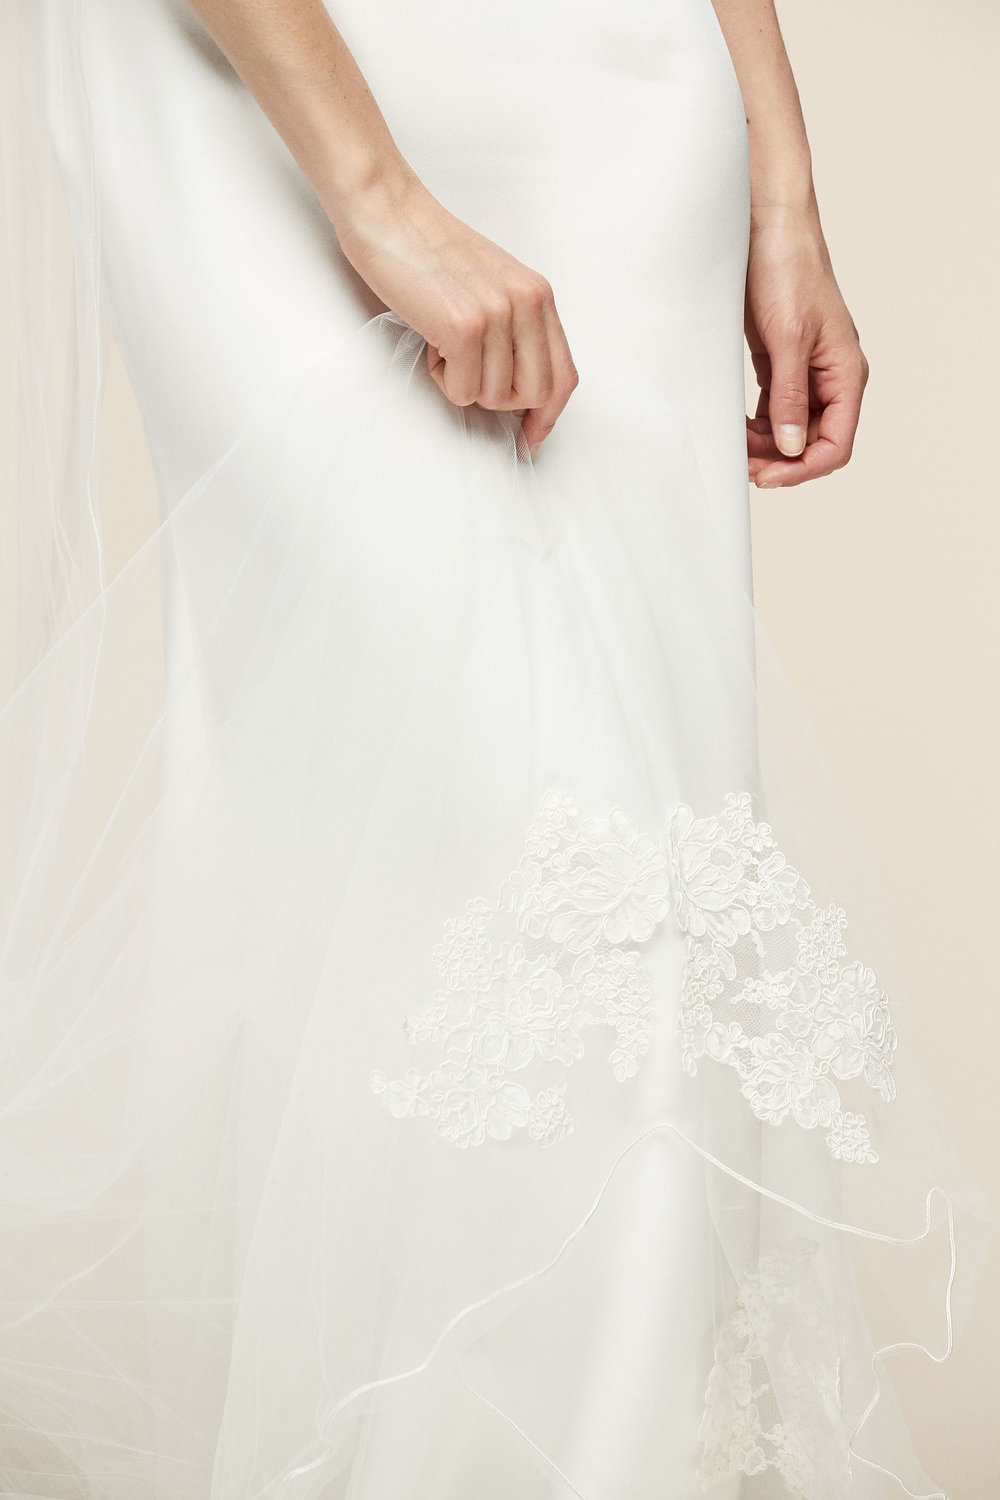 Peony Veil   Details- Scallop edge veil with lace detail at bottom  Available in all colors and lengths